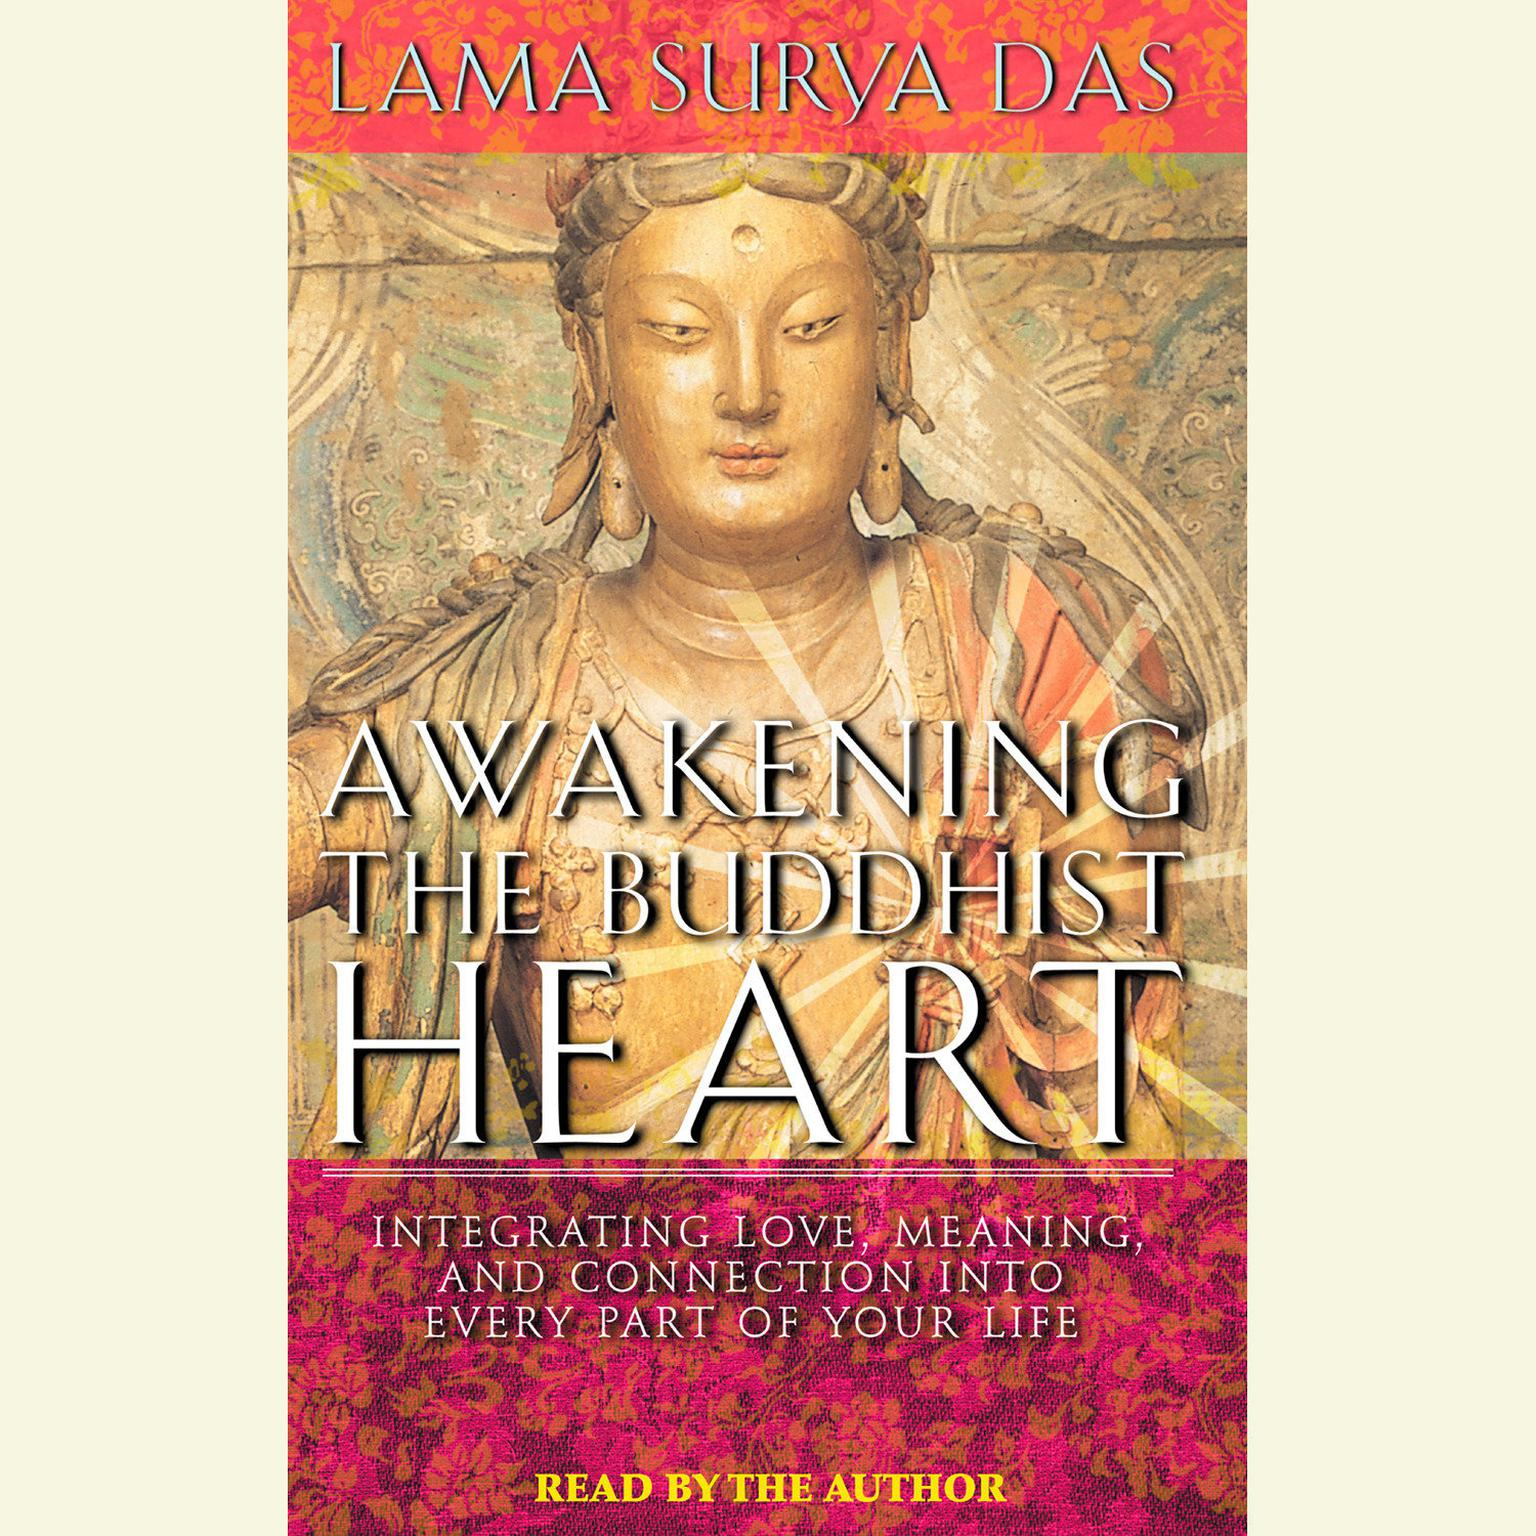 Printable Awakening the Buddhist Heart: Integrating Love, Meaning, and Connection into Every Part of Your Life Audiobook Cover Art